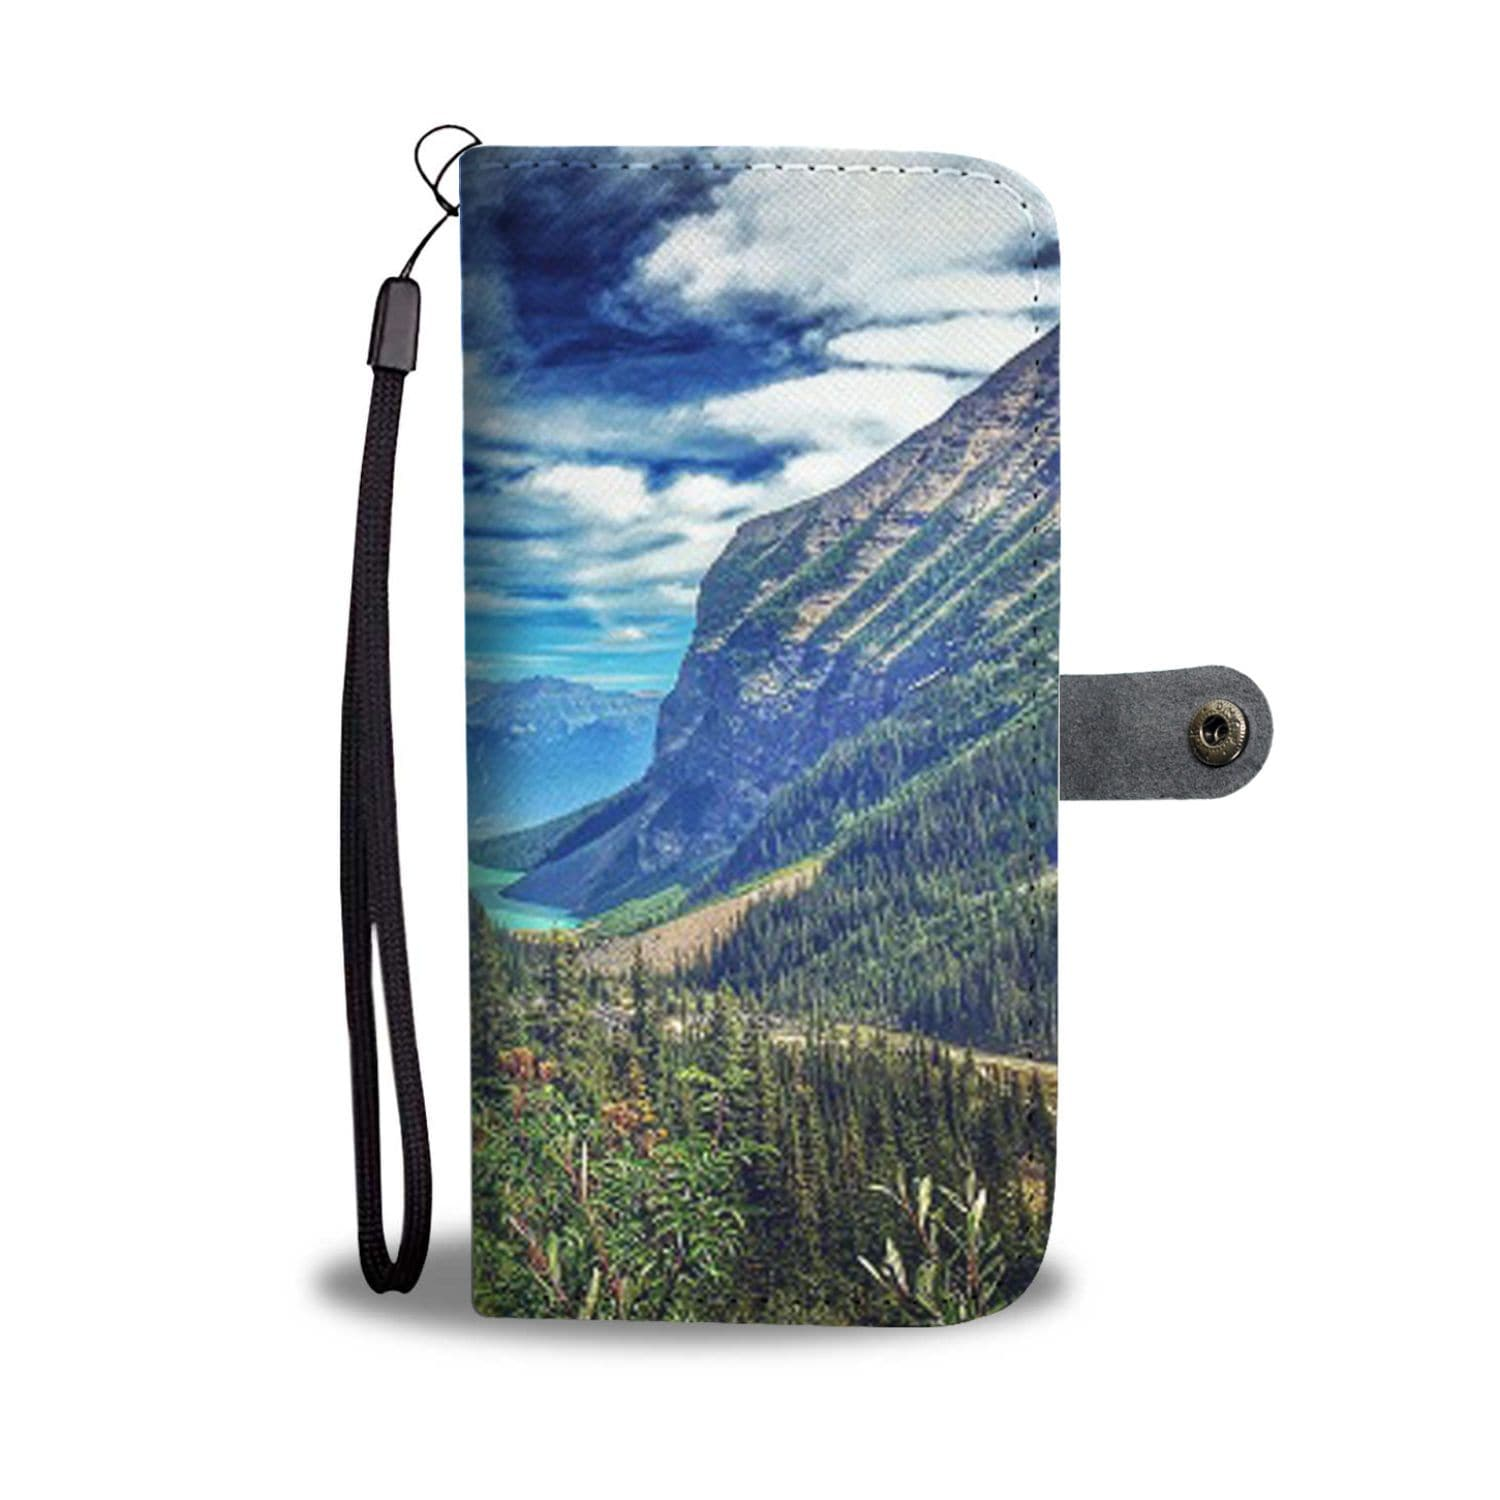 Banff Beauty Smartphone Wallet Case